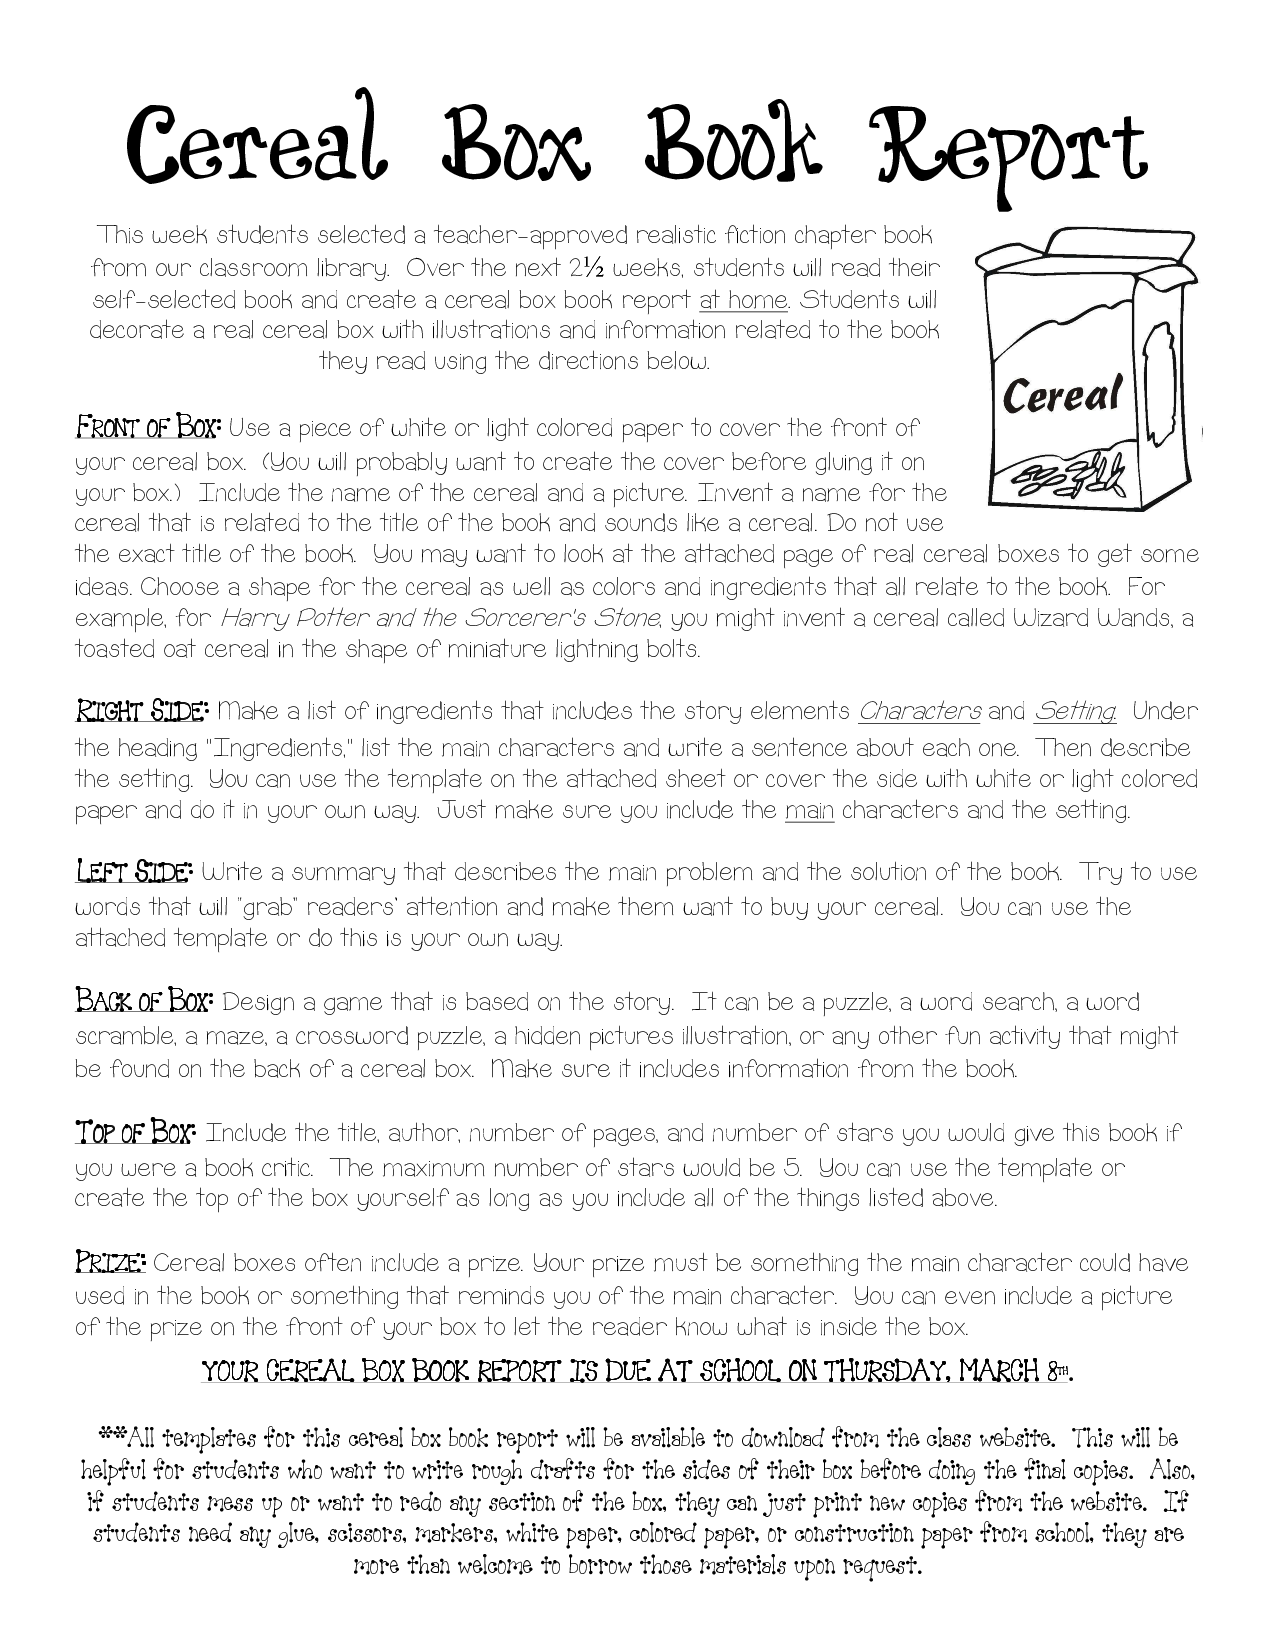 Cereal Box Book Report Instructions Cereal Box Book Report Template